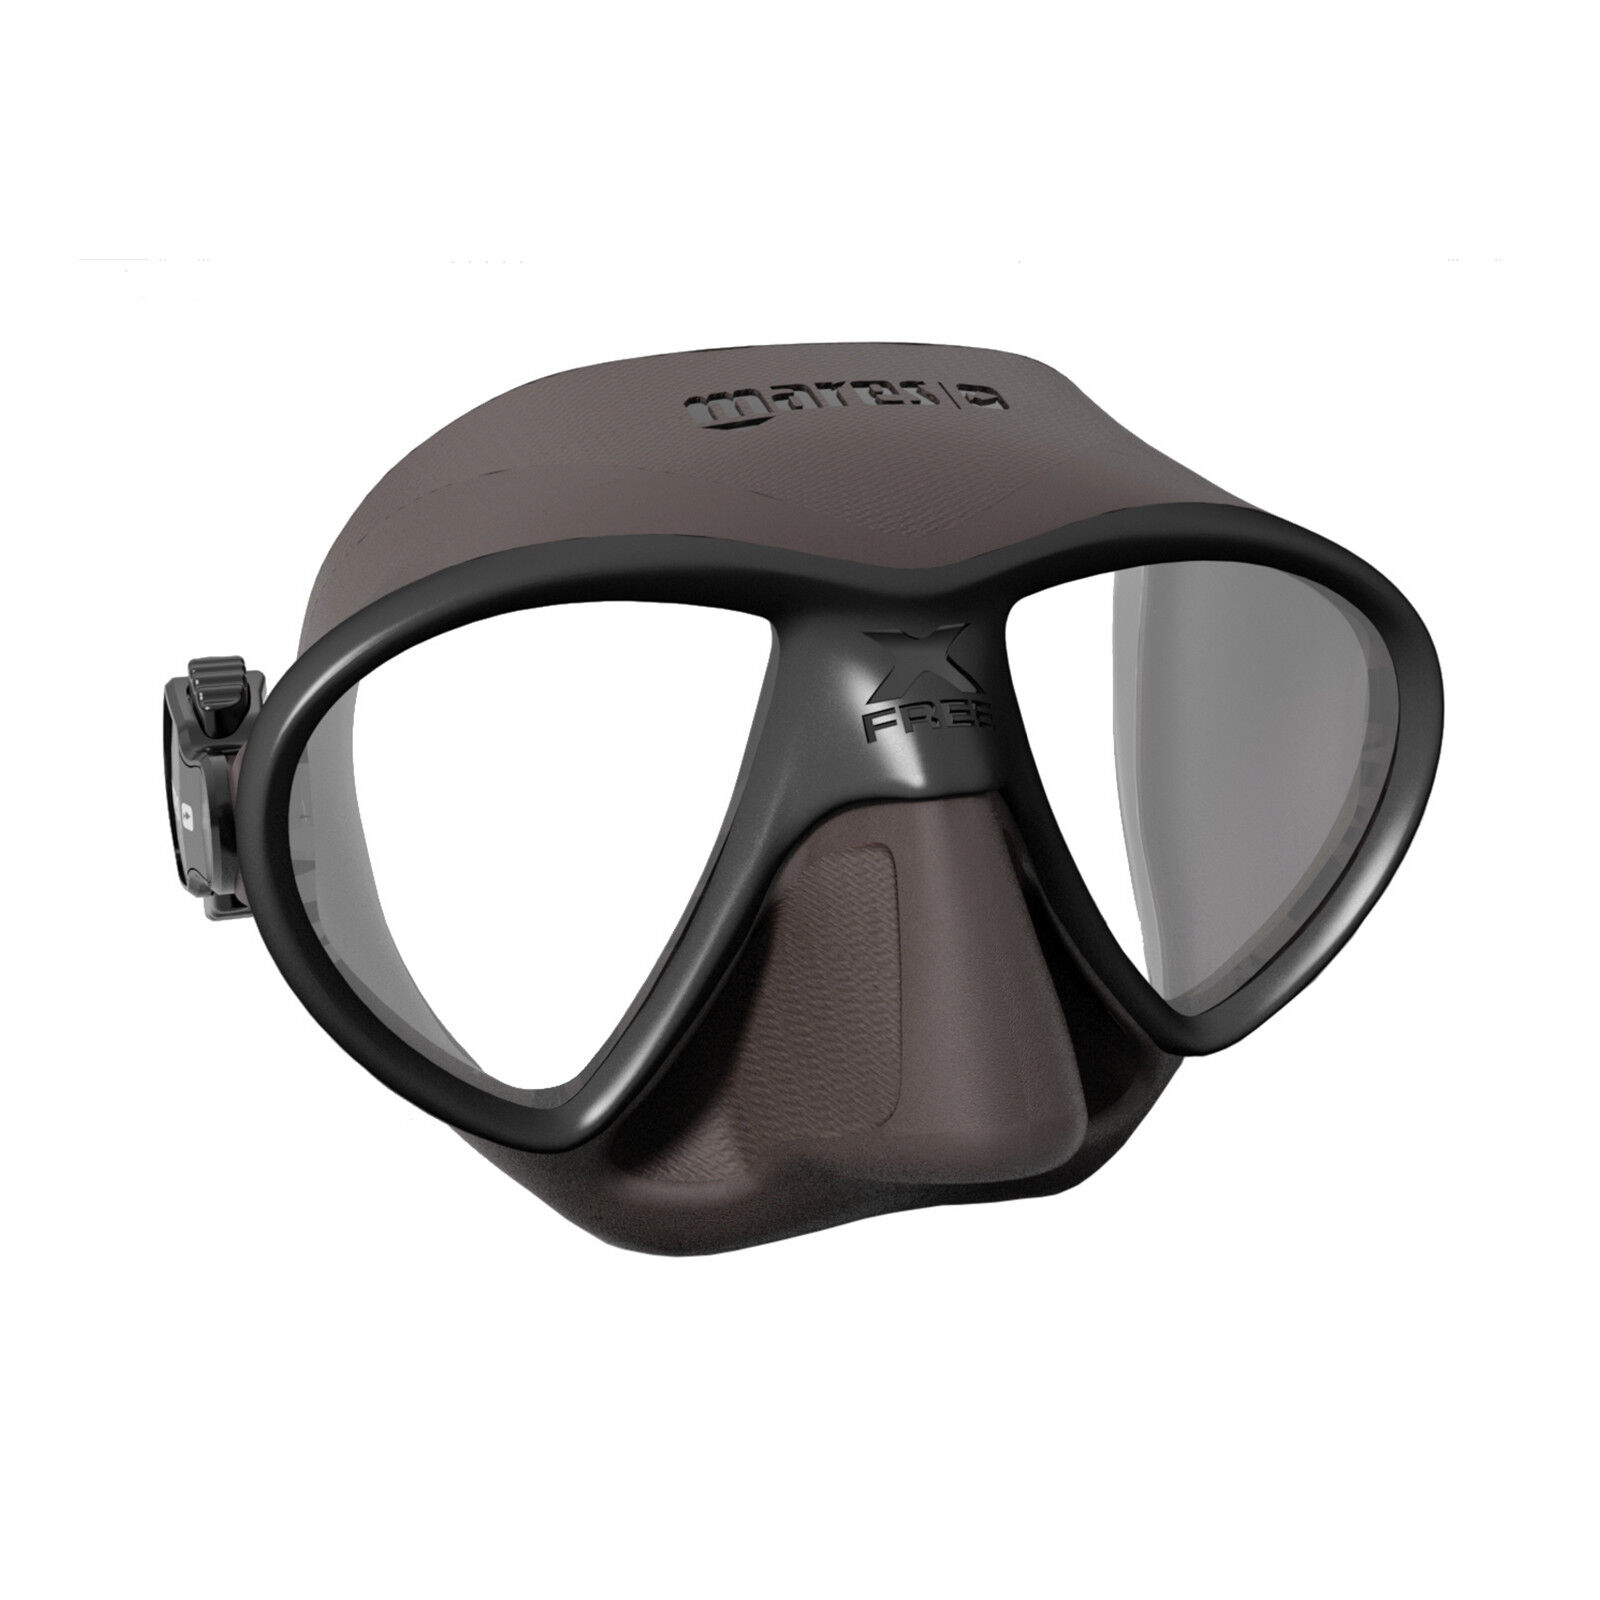 Mares X-FREE Mask SF, FreeDive, Scuba, Diving Dive Brown 421412